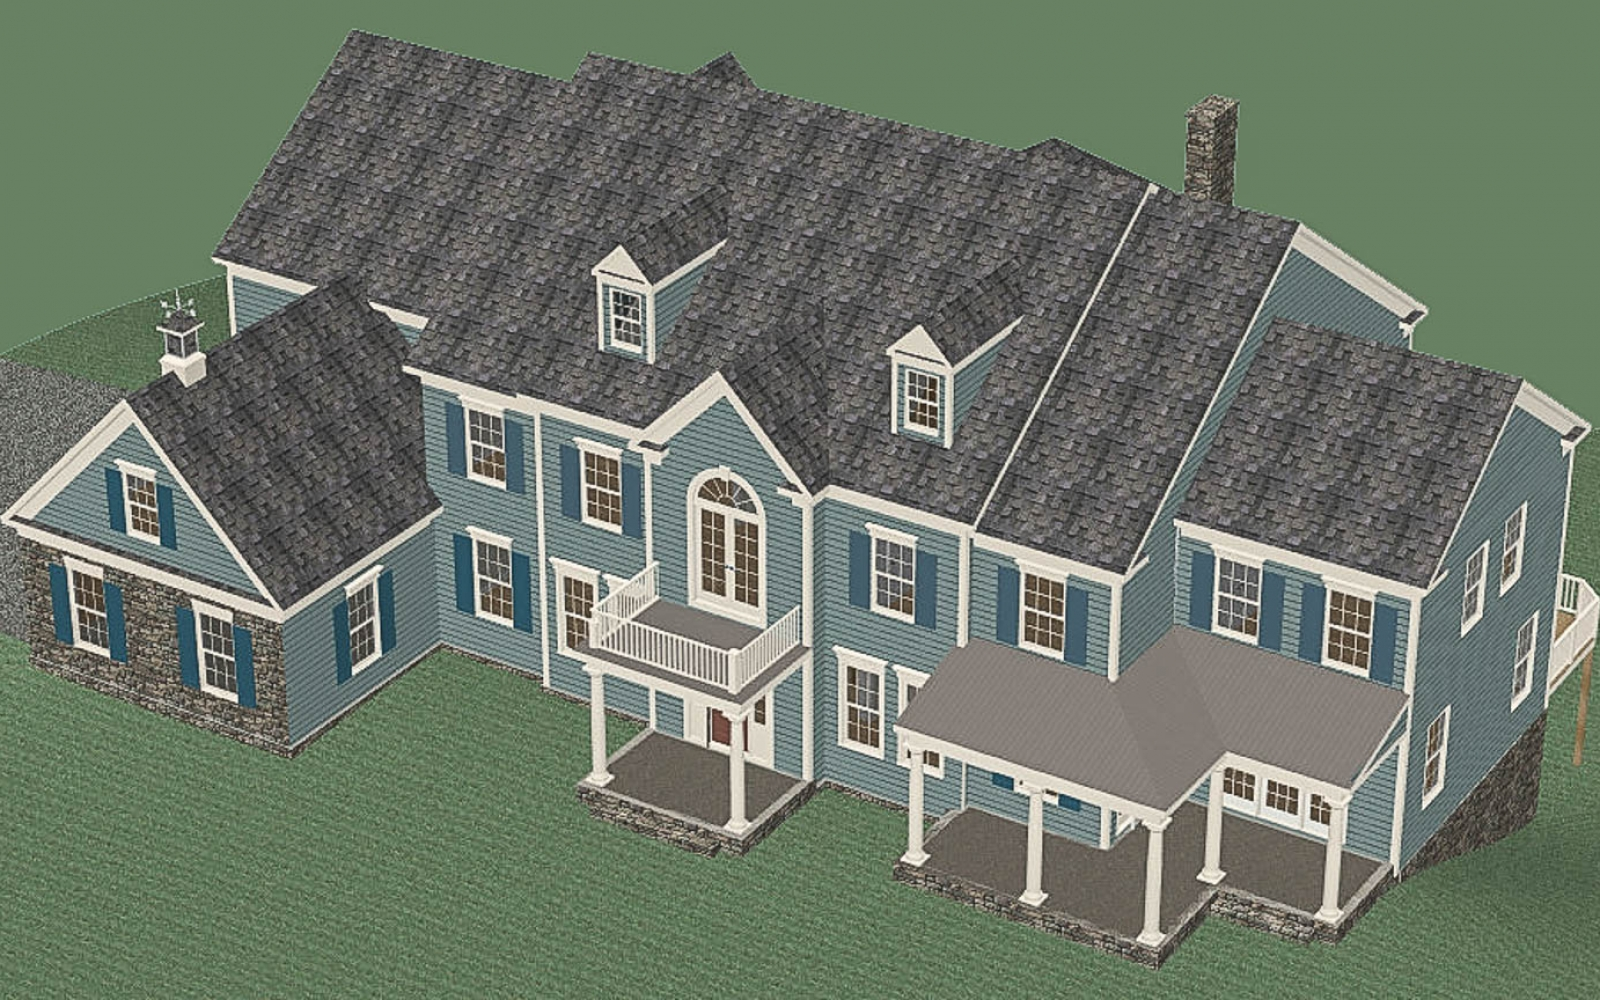 Sweetbriar Residence Overview